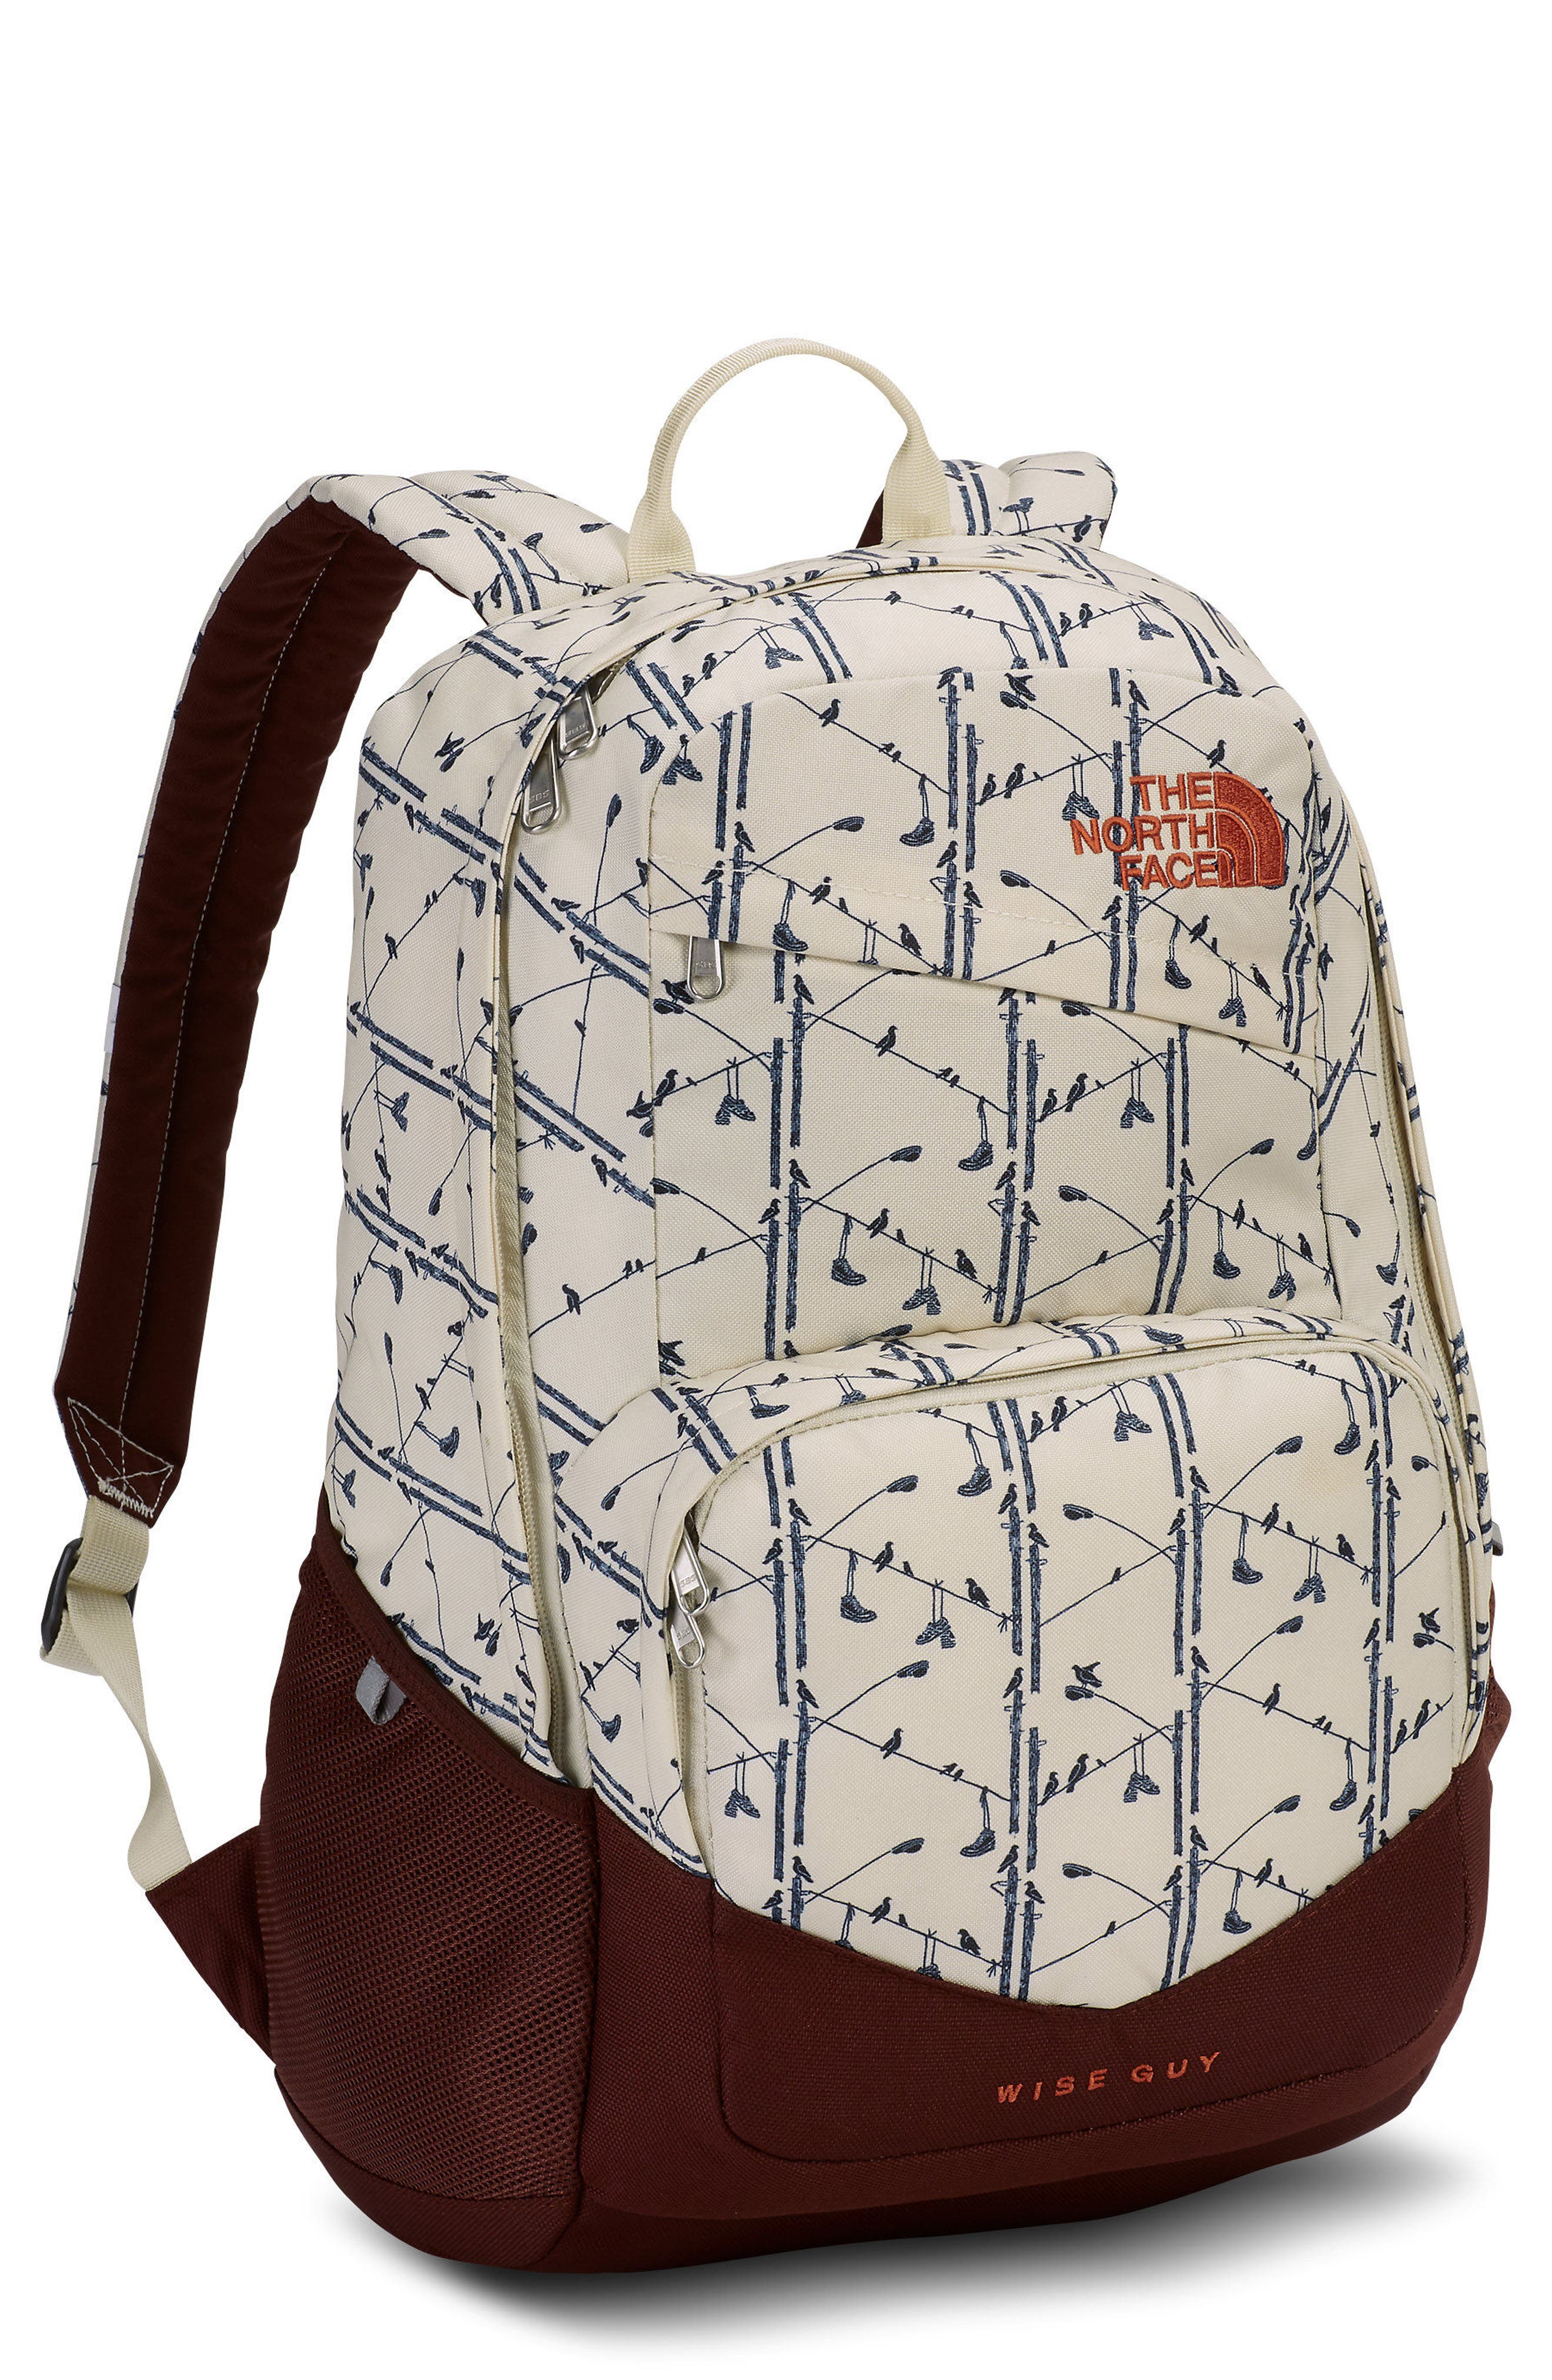 The North Face 'Wise Guy' Backpack